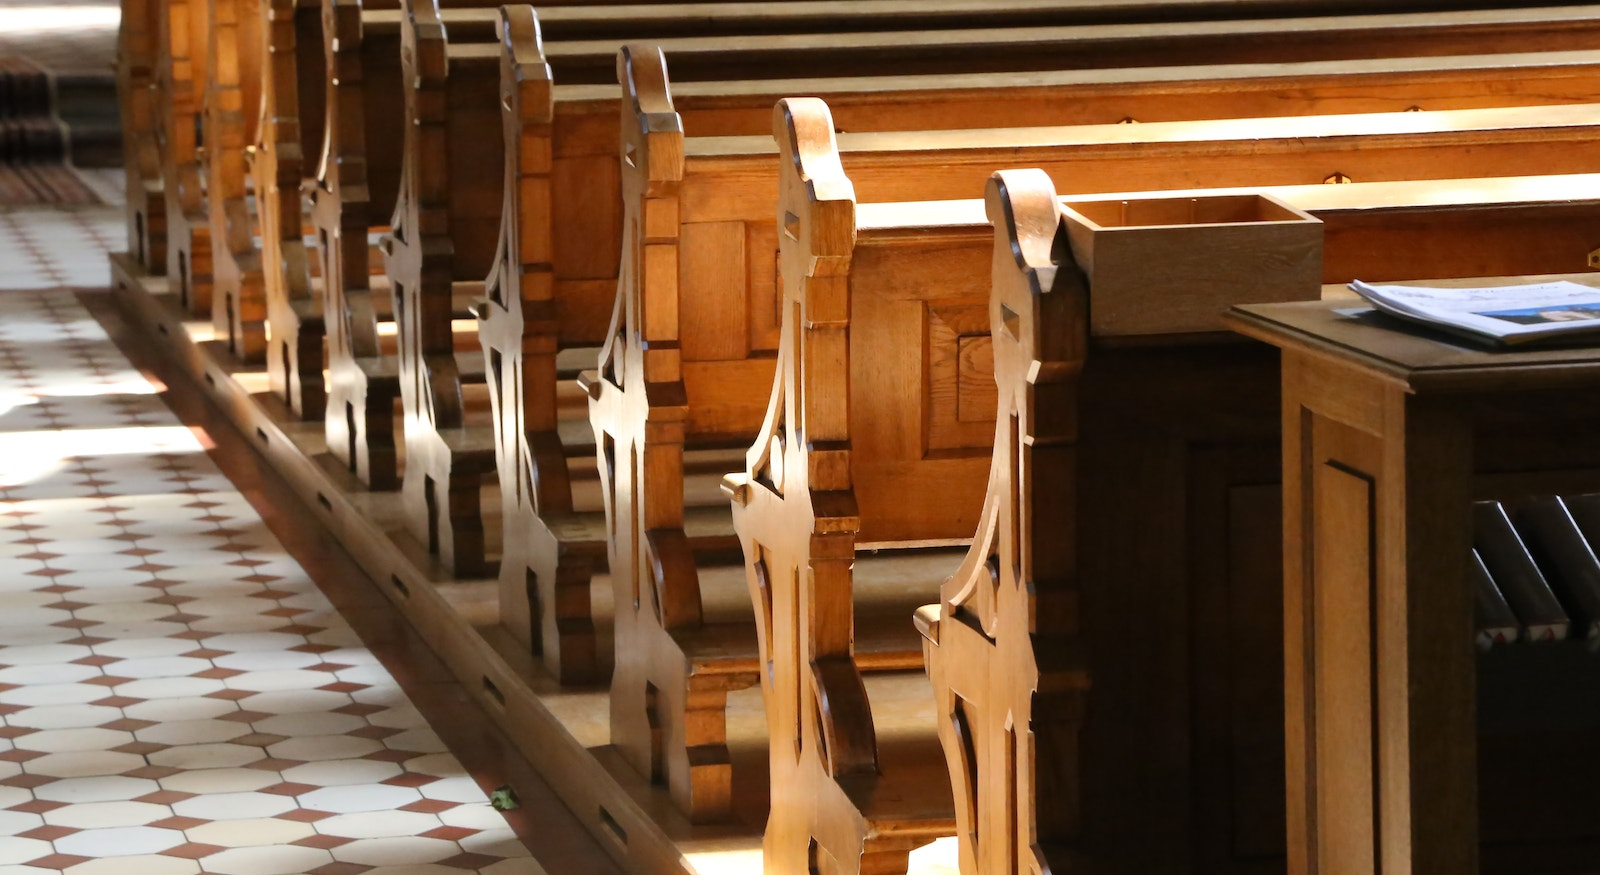 Church Pews Cropped